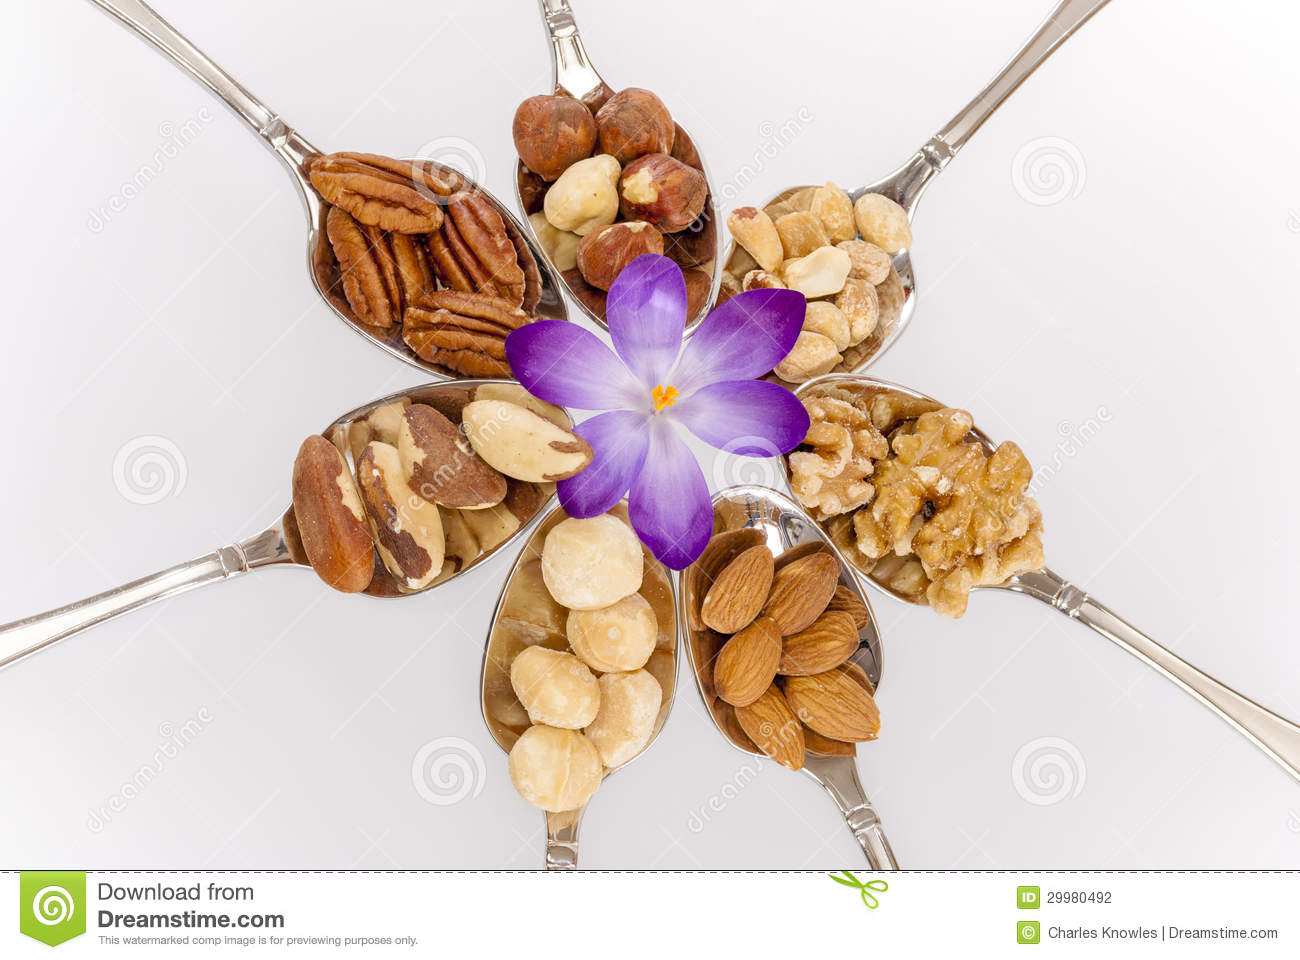 Different Nuts On Spoons With A Flower Stock Photo - Image